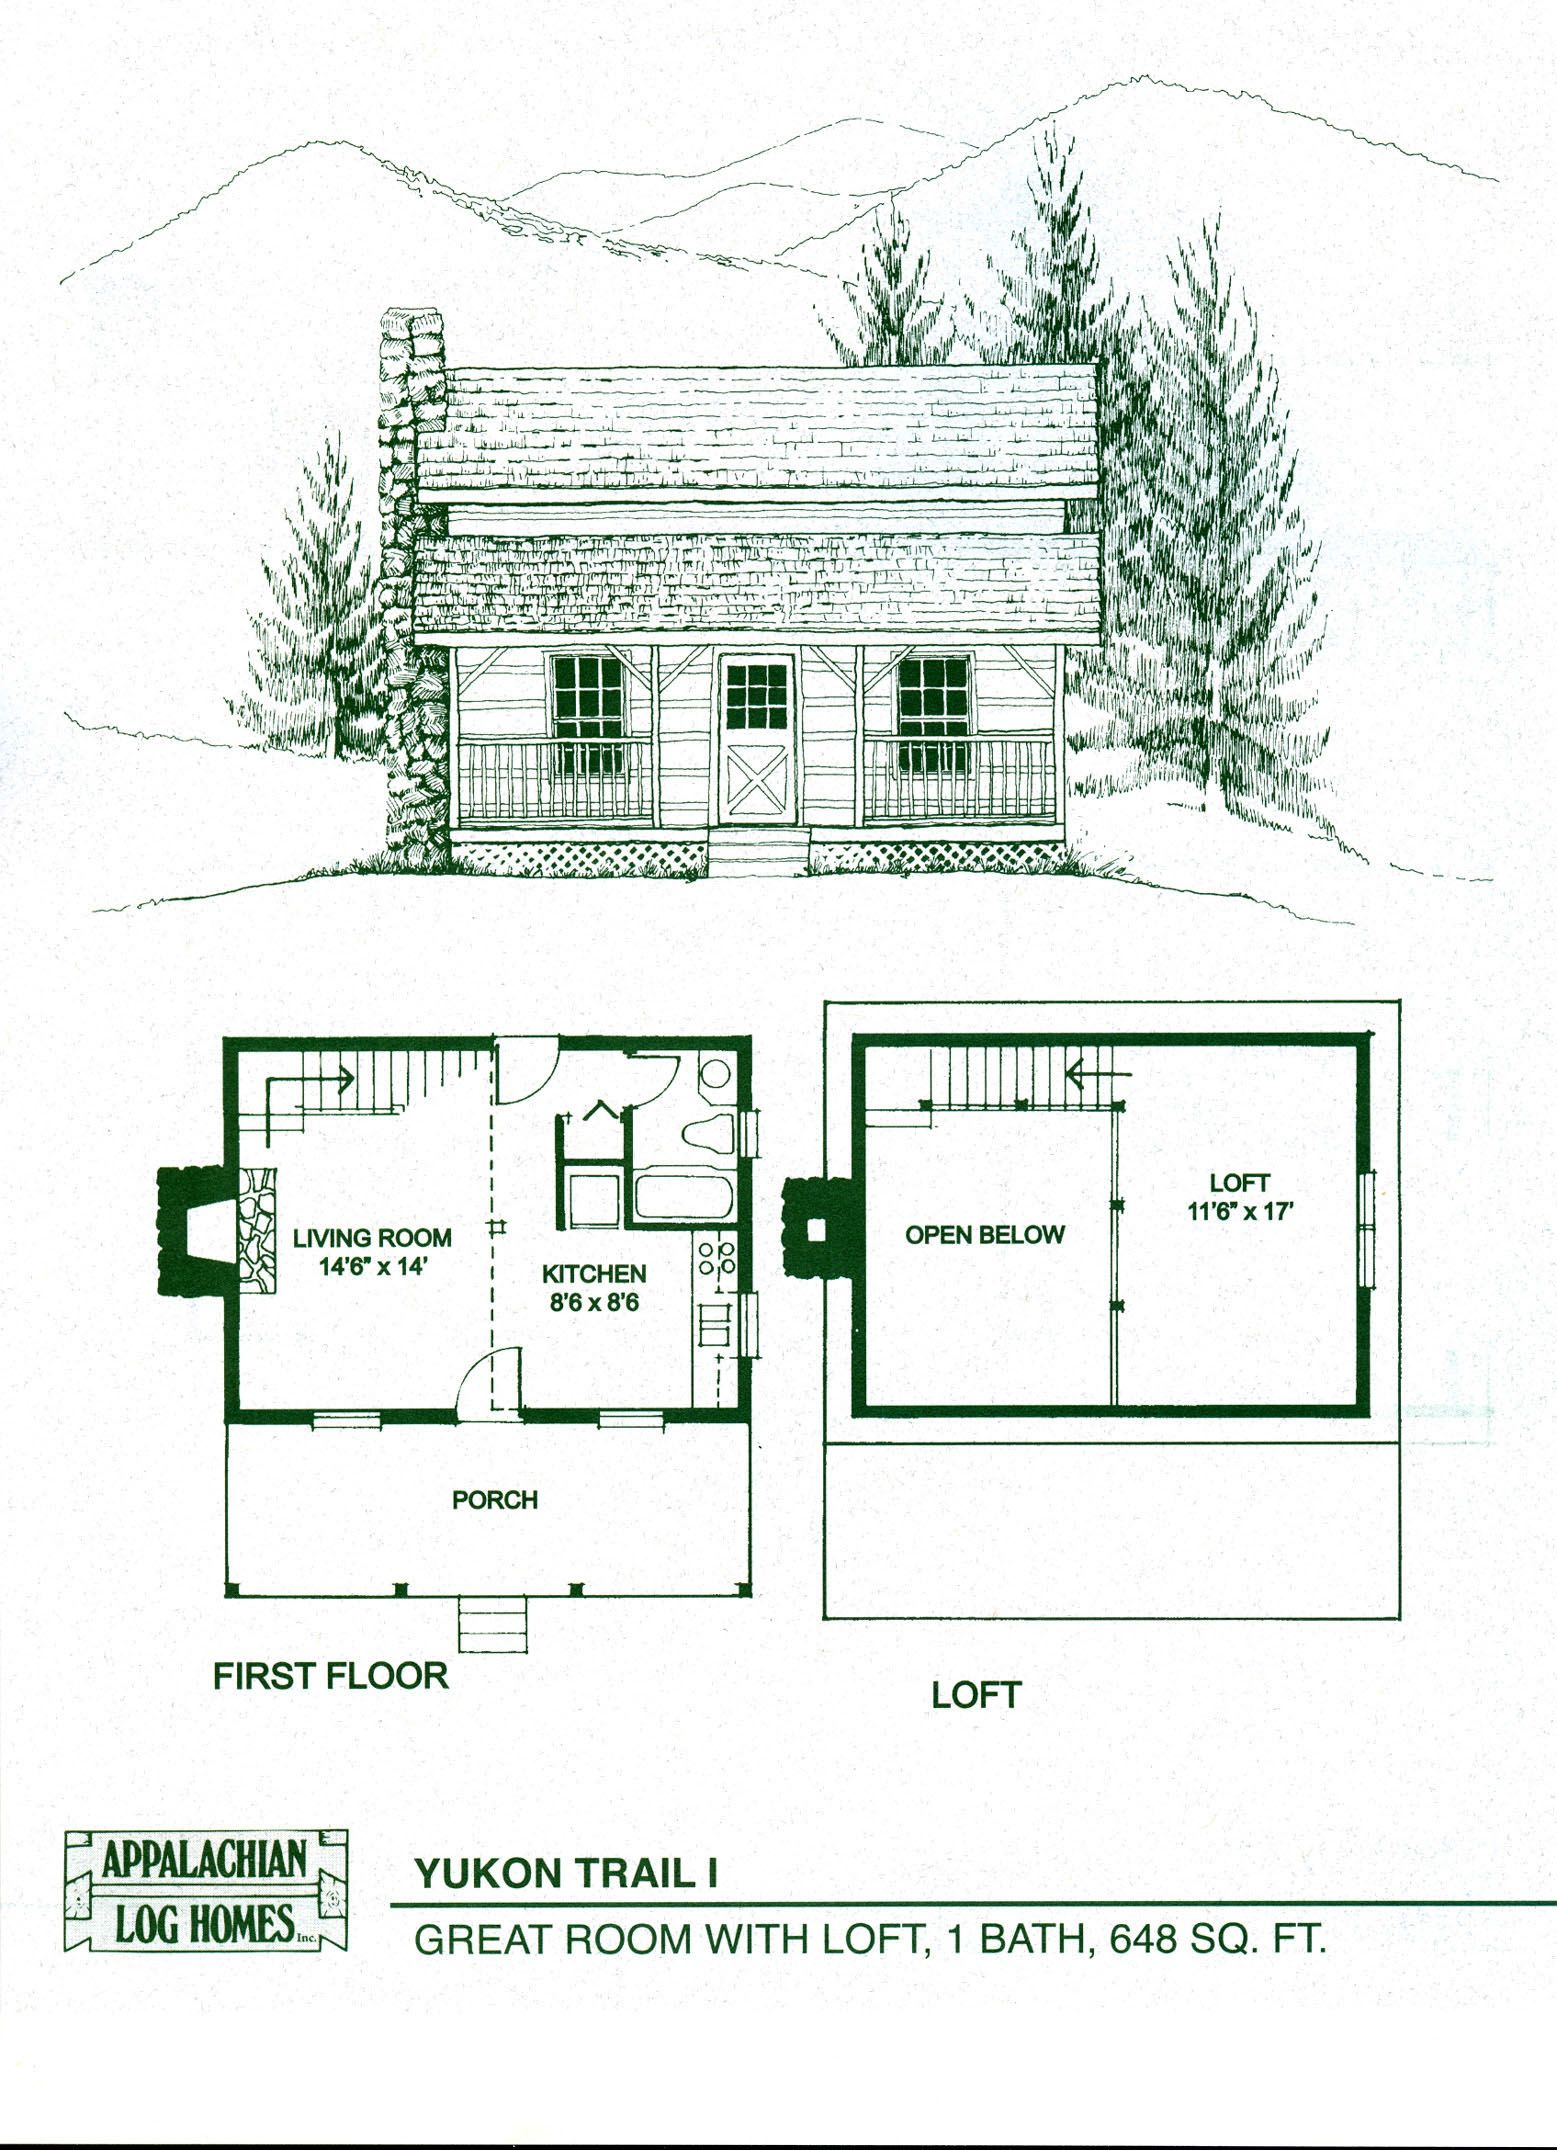 log home floor plans log cabin kits appalachian log homes house